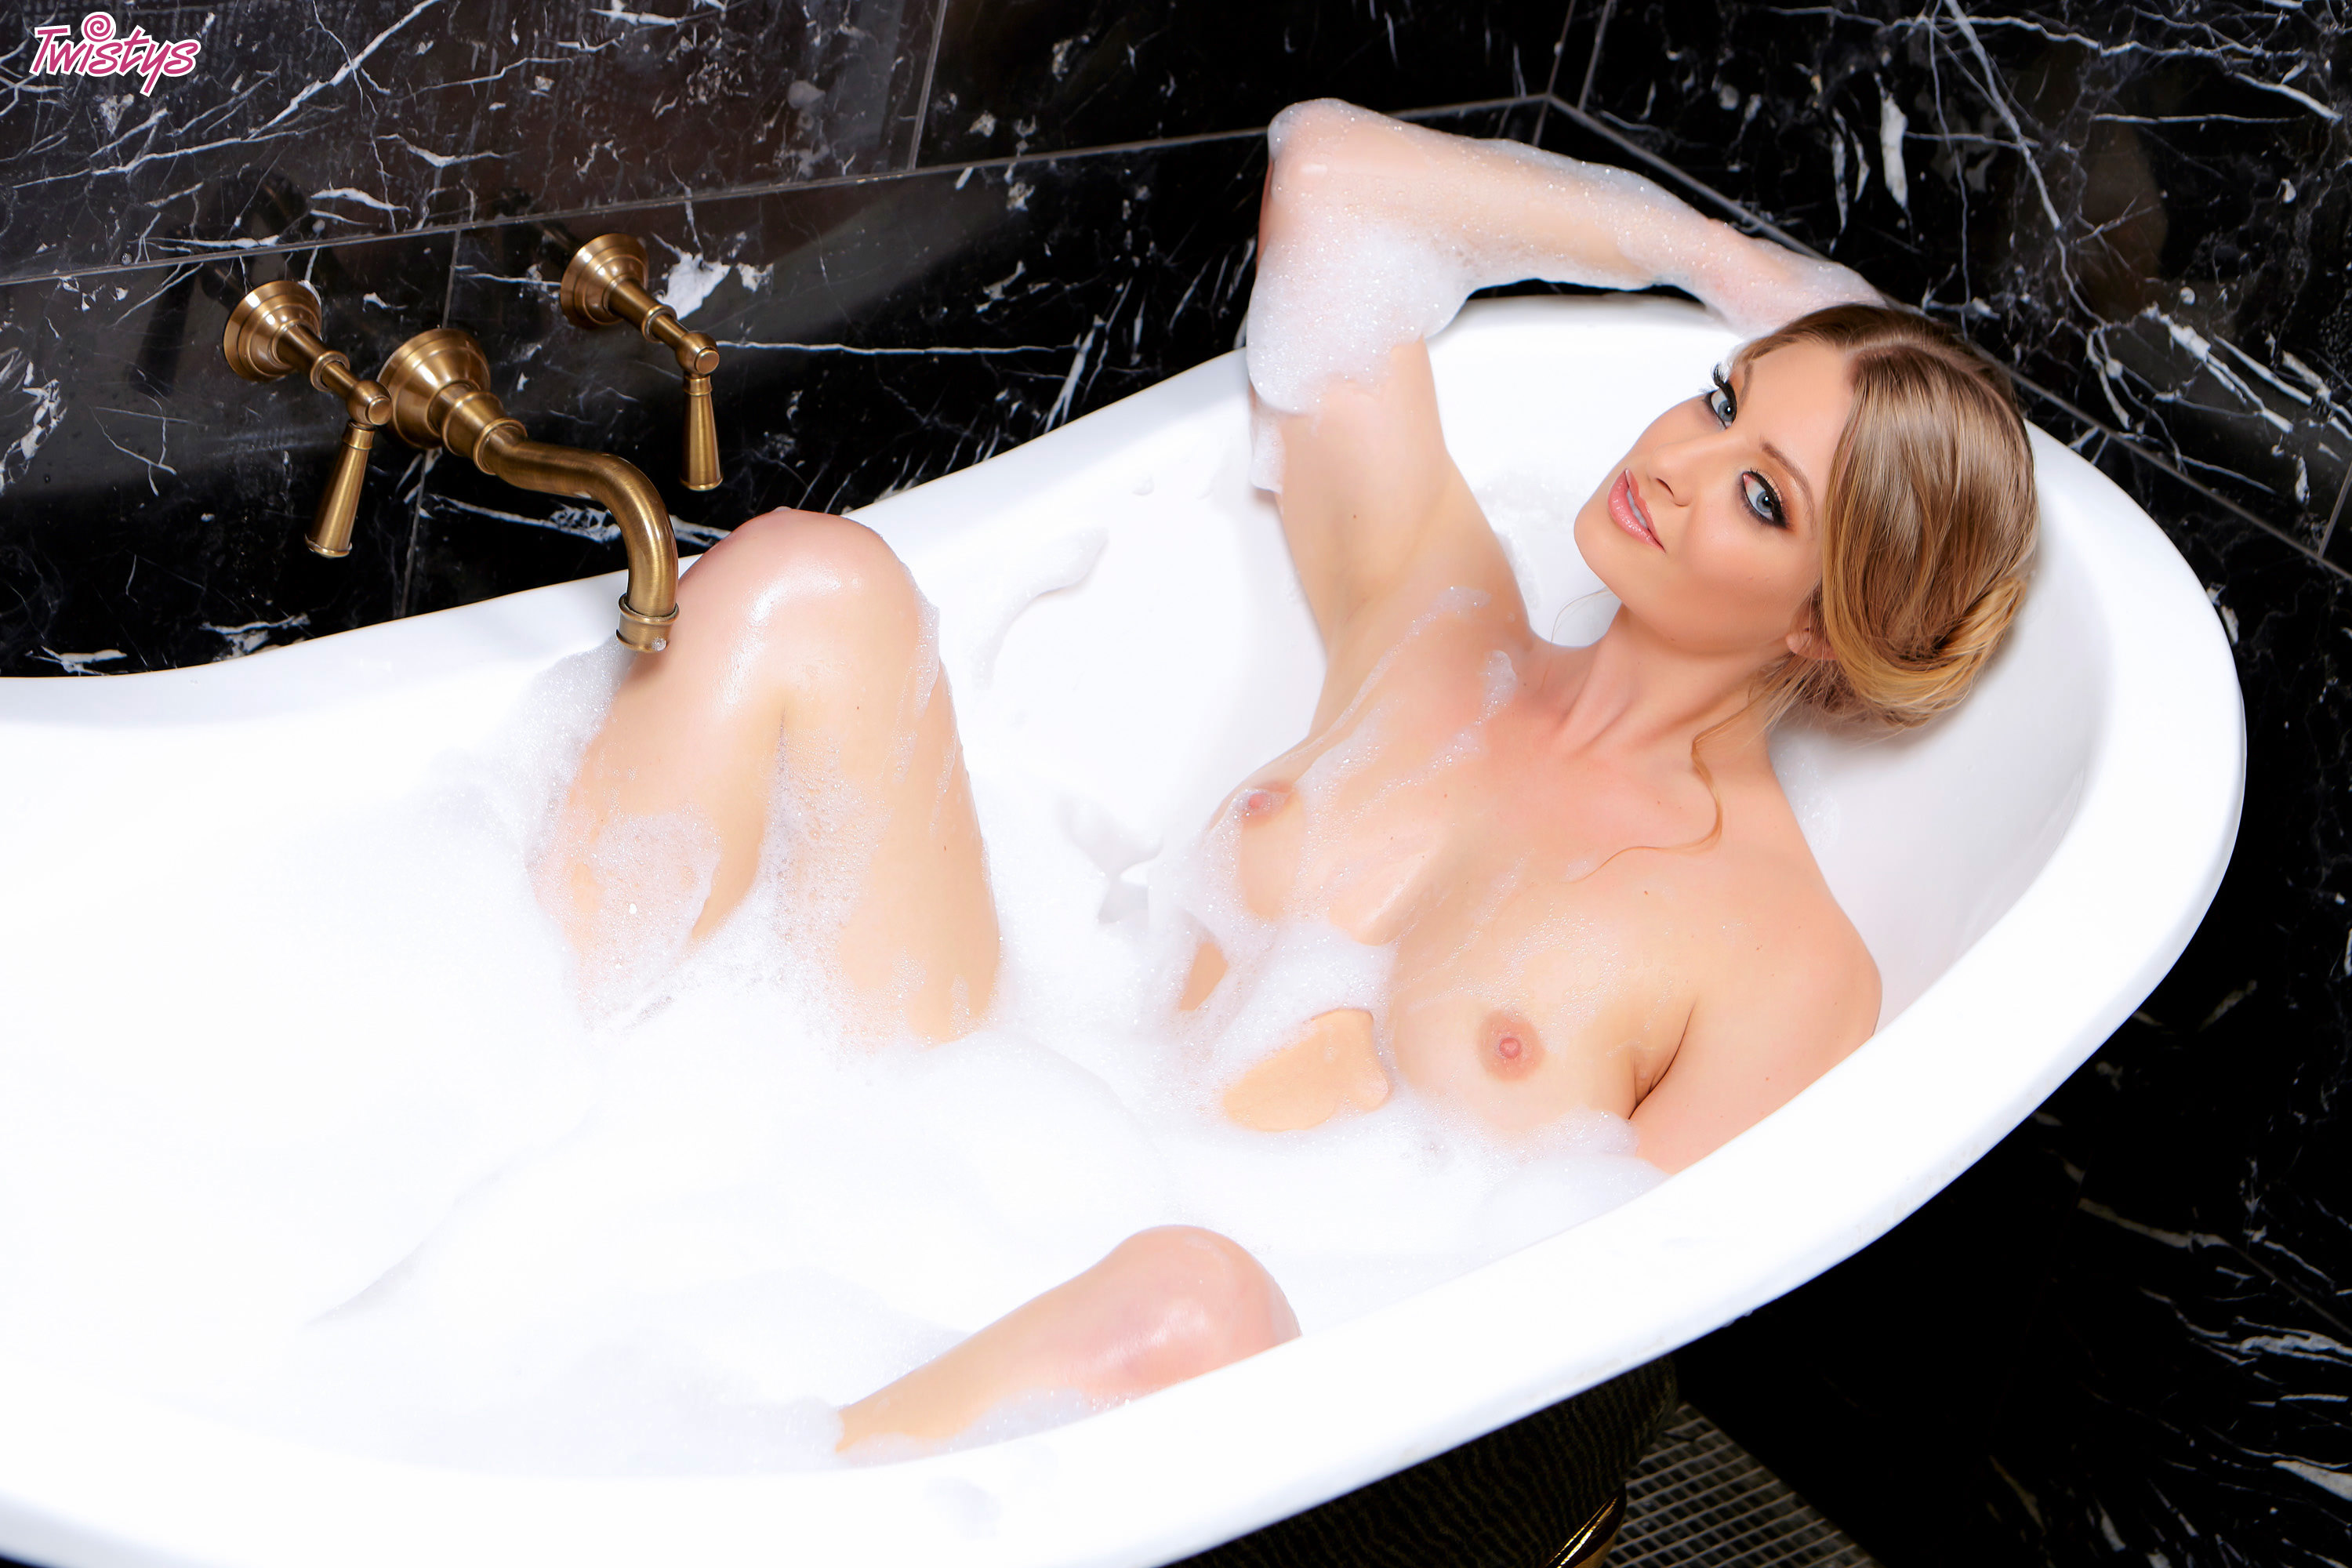 Wet porn stars in bath tub — img 4